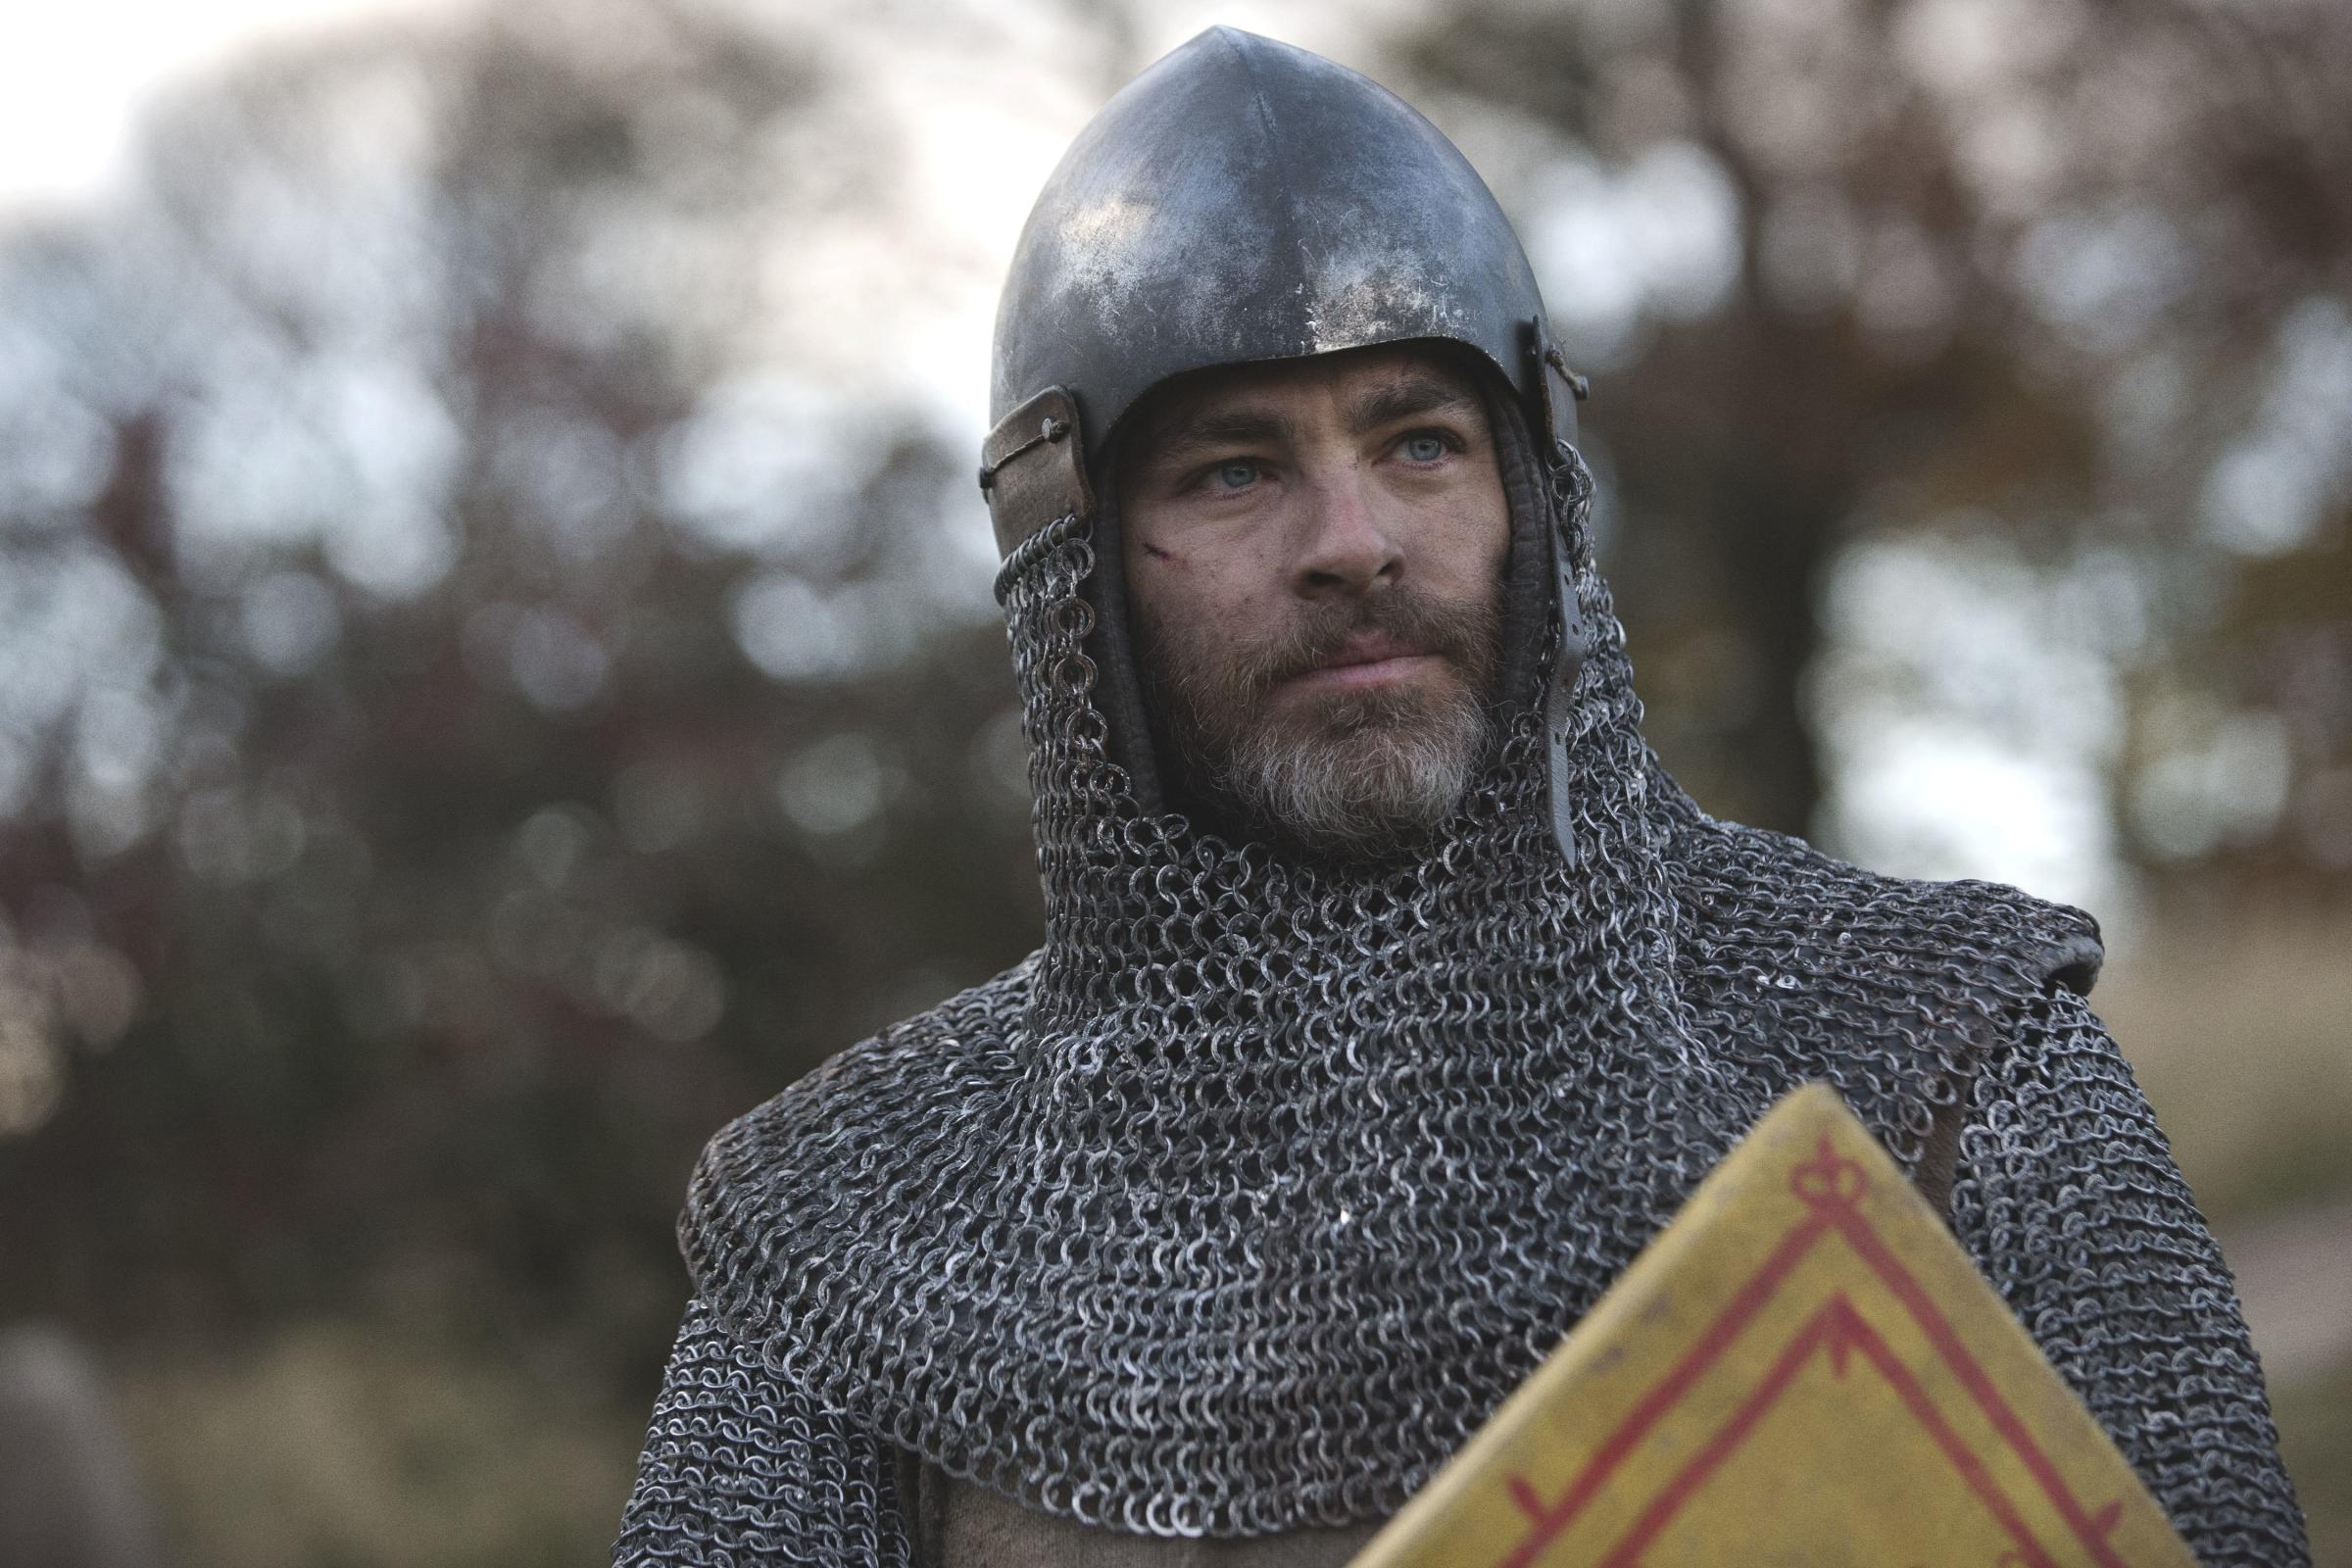 Some Scots are learning results from the days of Robert the Bruce